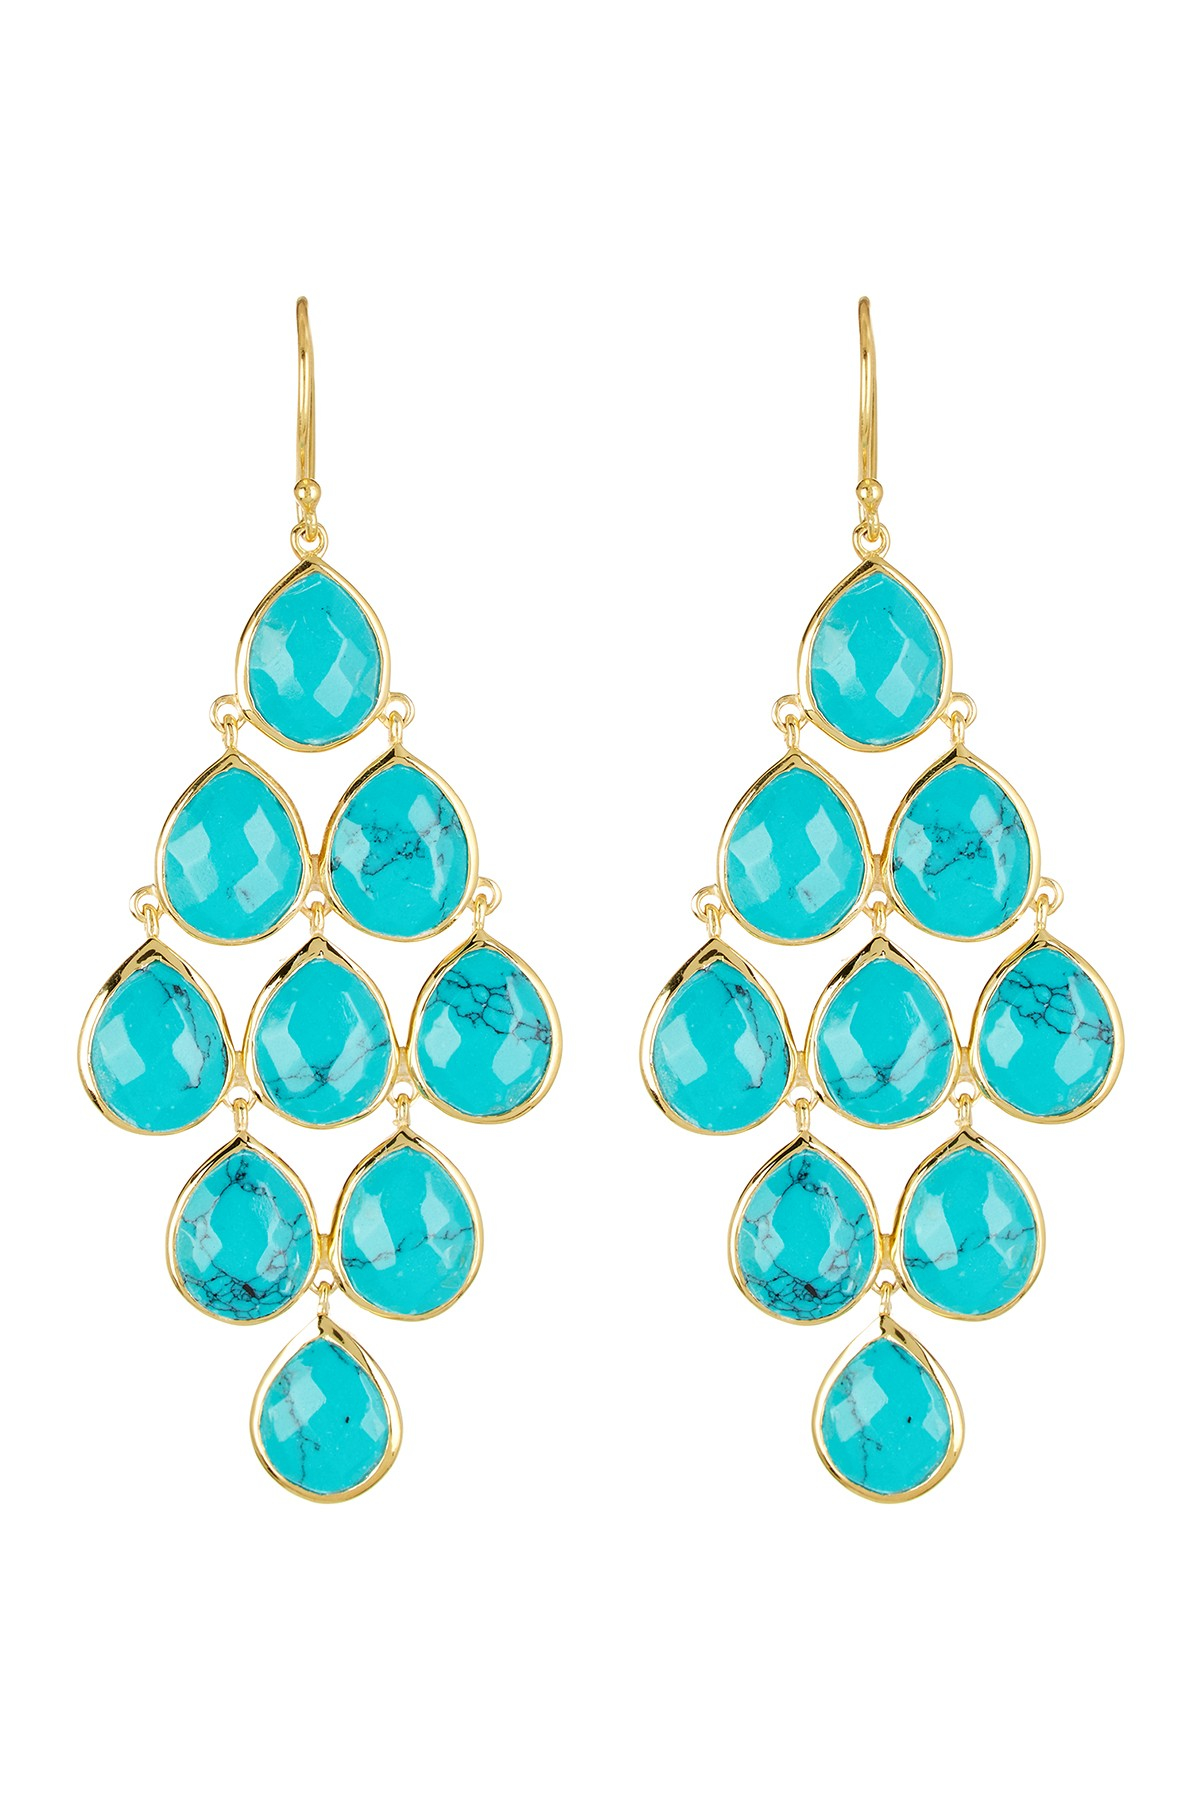 Argento Vivo 18k Gold Plated Sterling Silver Turquoise